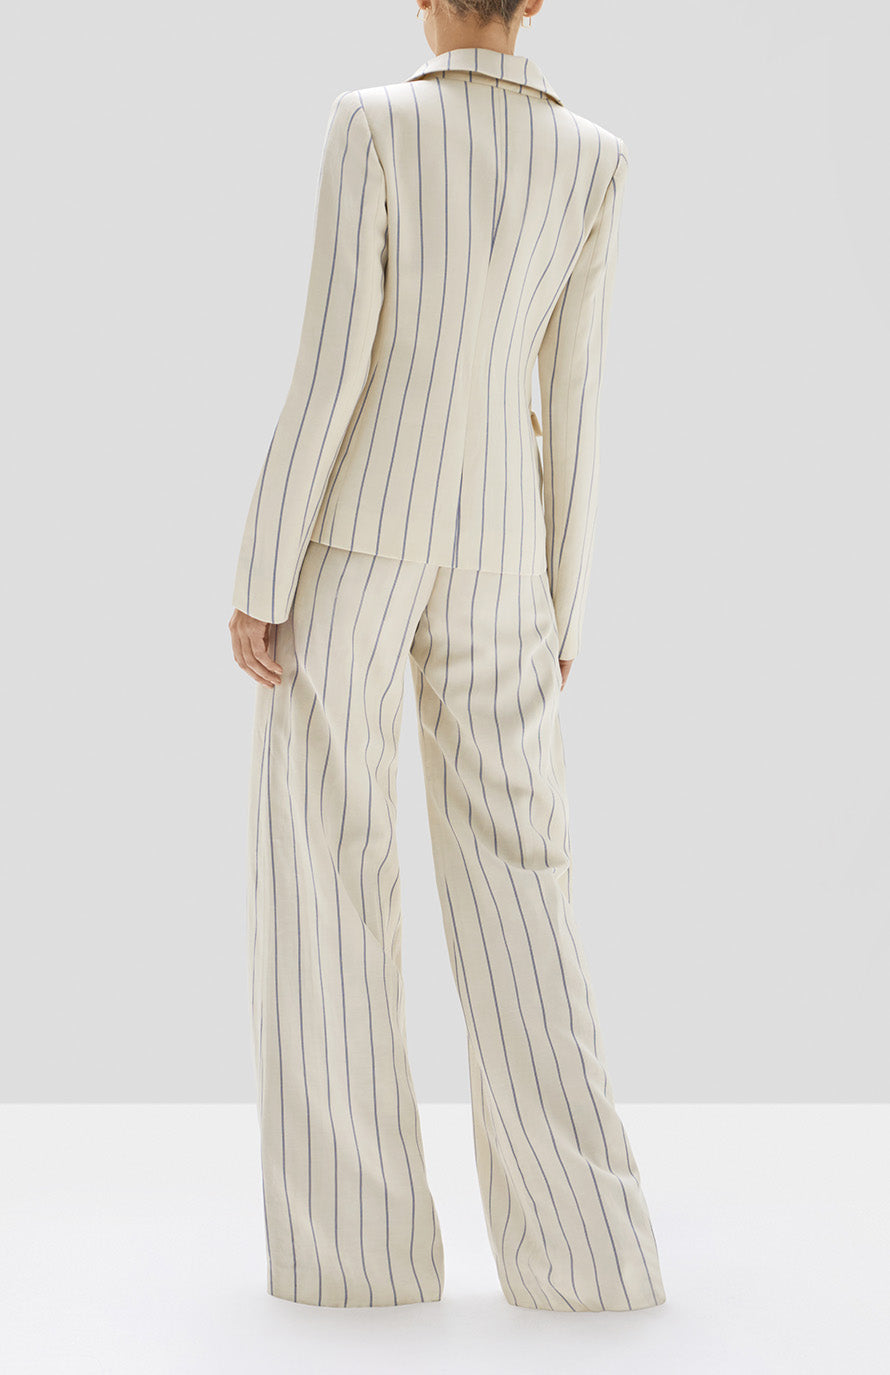 Alexis Enos Jacket and Dixon Pant in Blue Stripes from Pre Spring 2020 Collection - Rear View